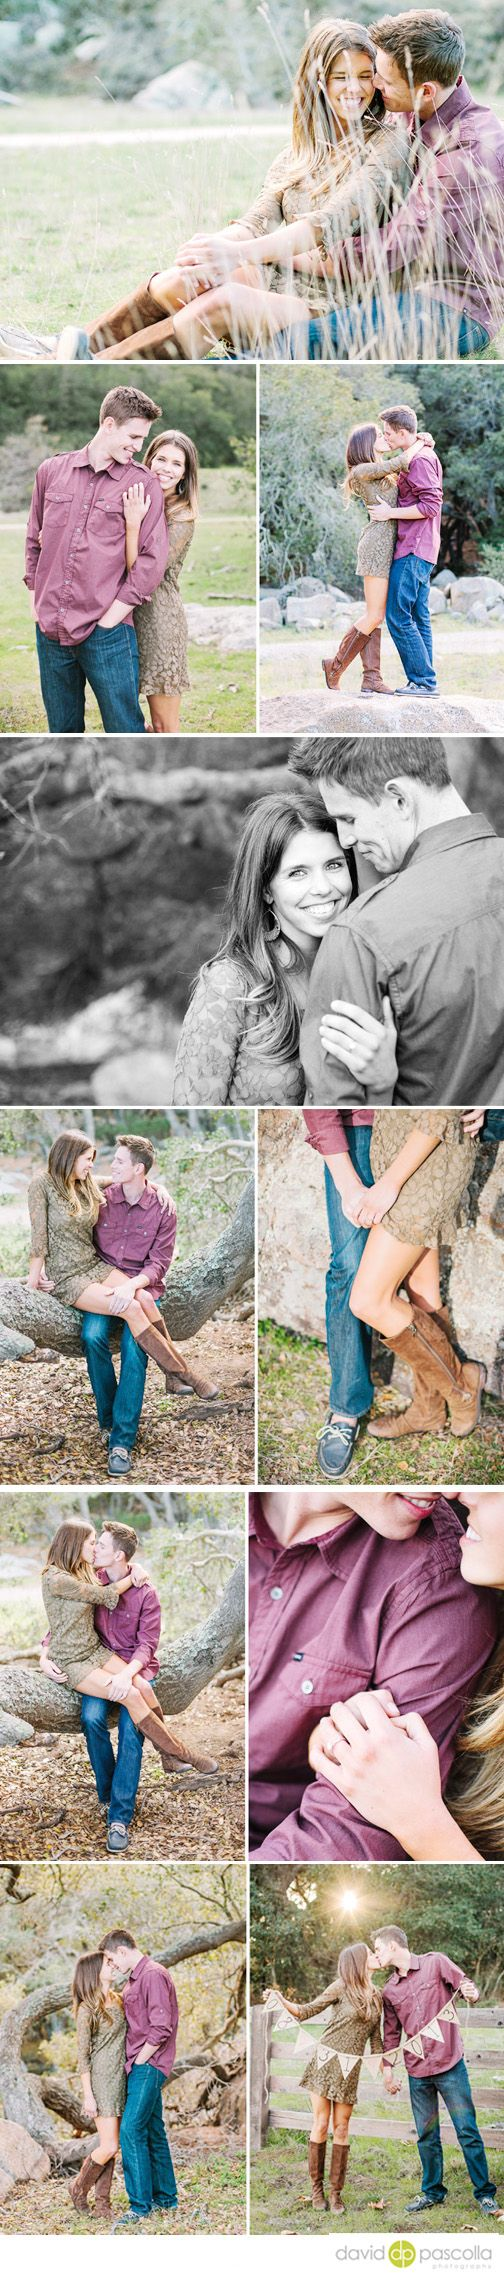 Rustic engagement session. Engagement posing. Engagement outfit. Boots, dress. David Pascolla Photography